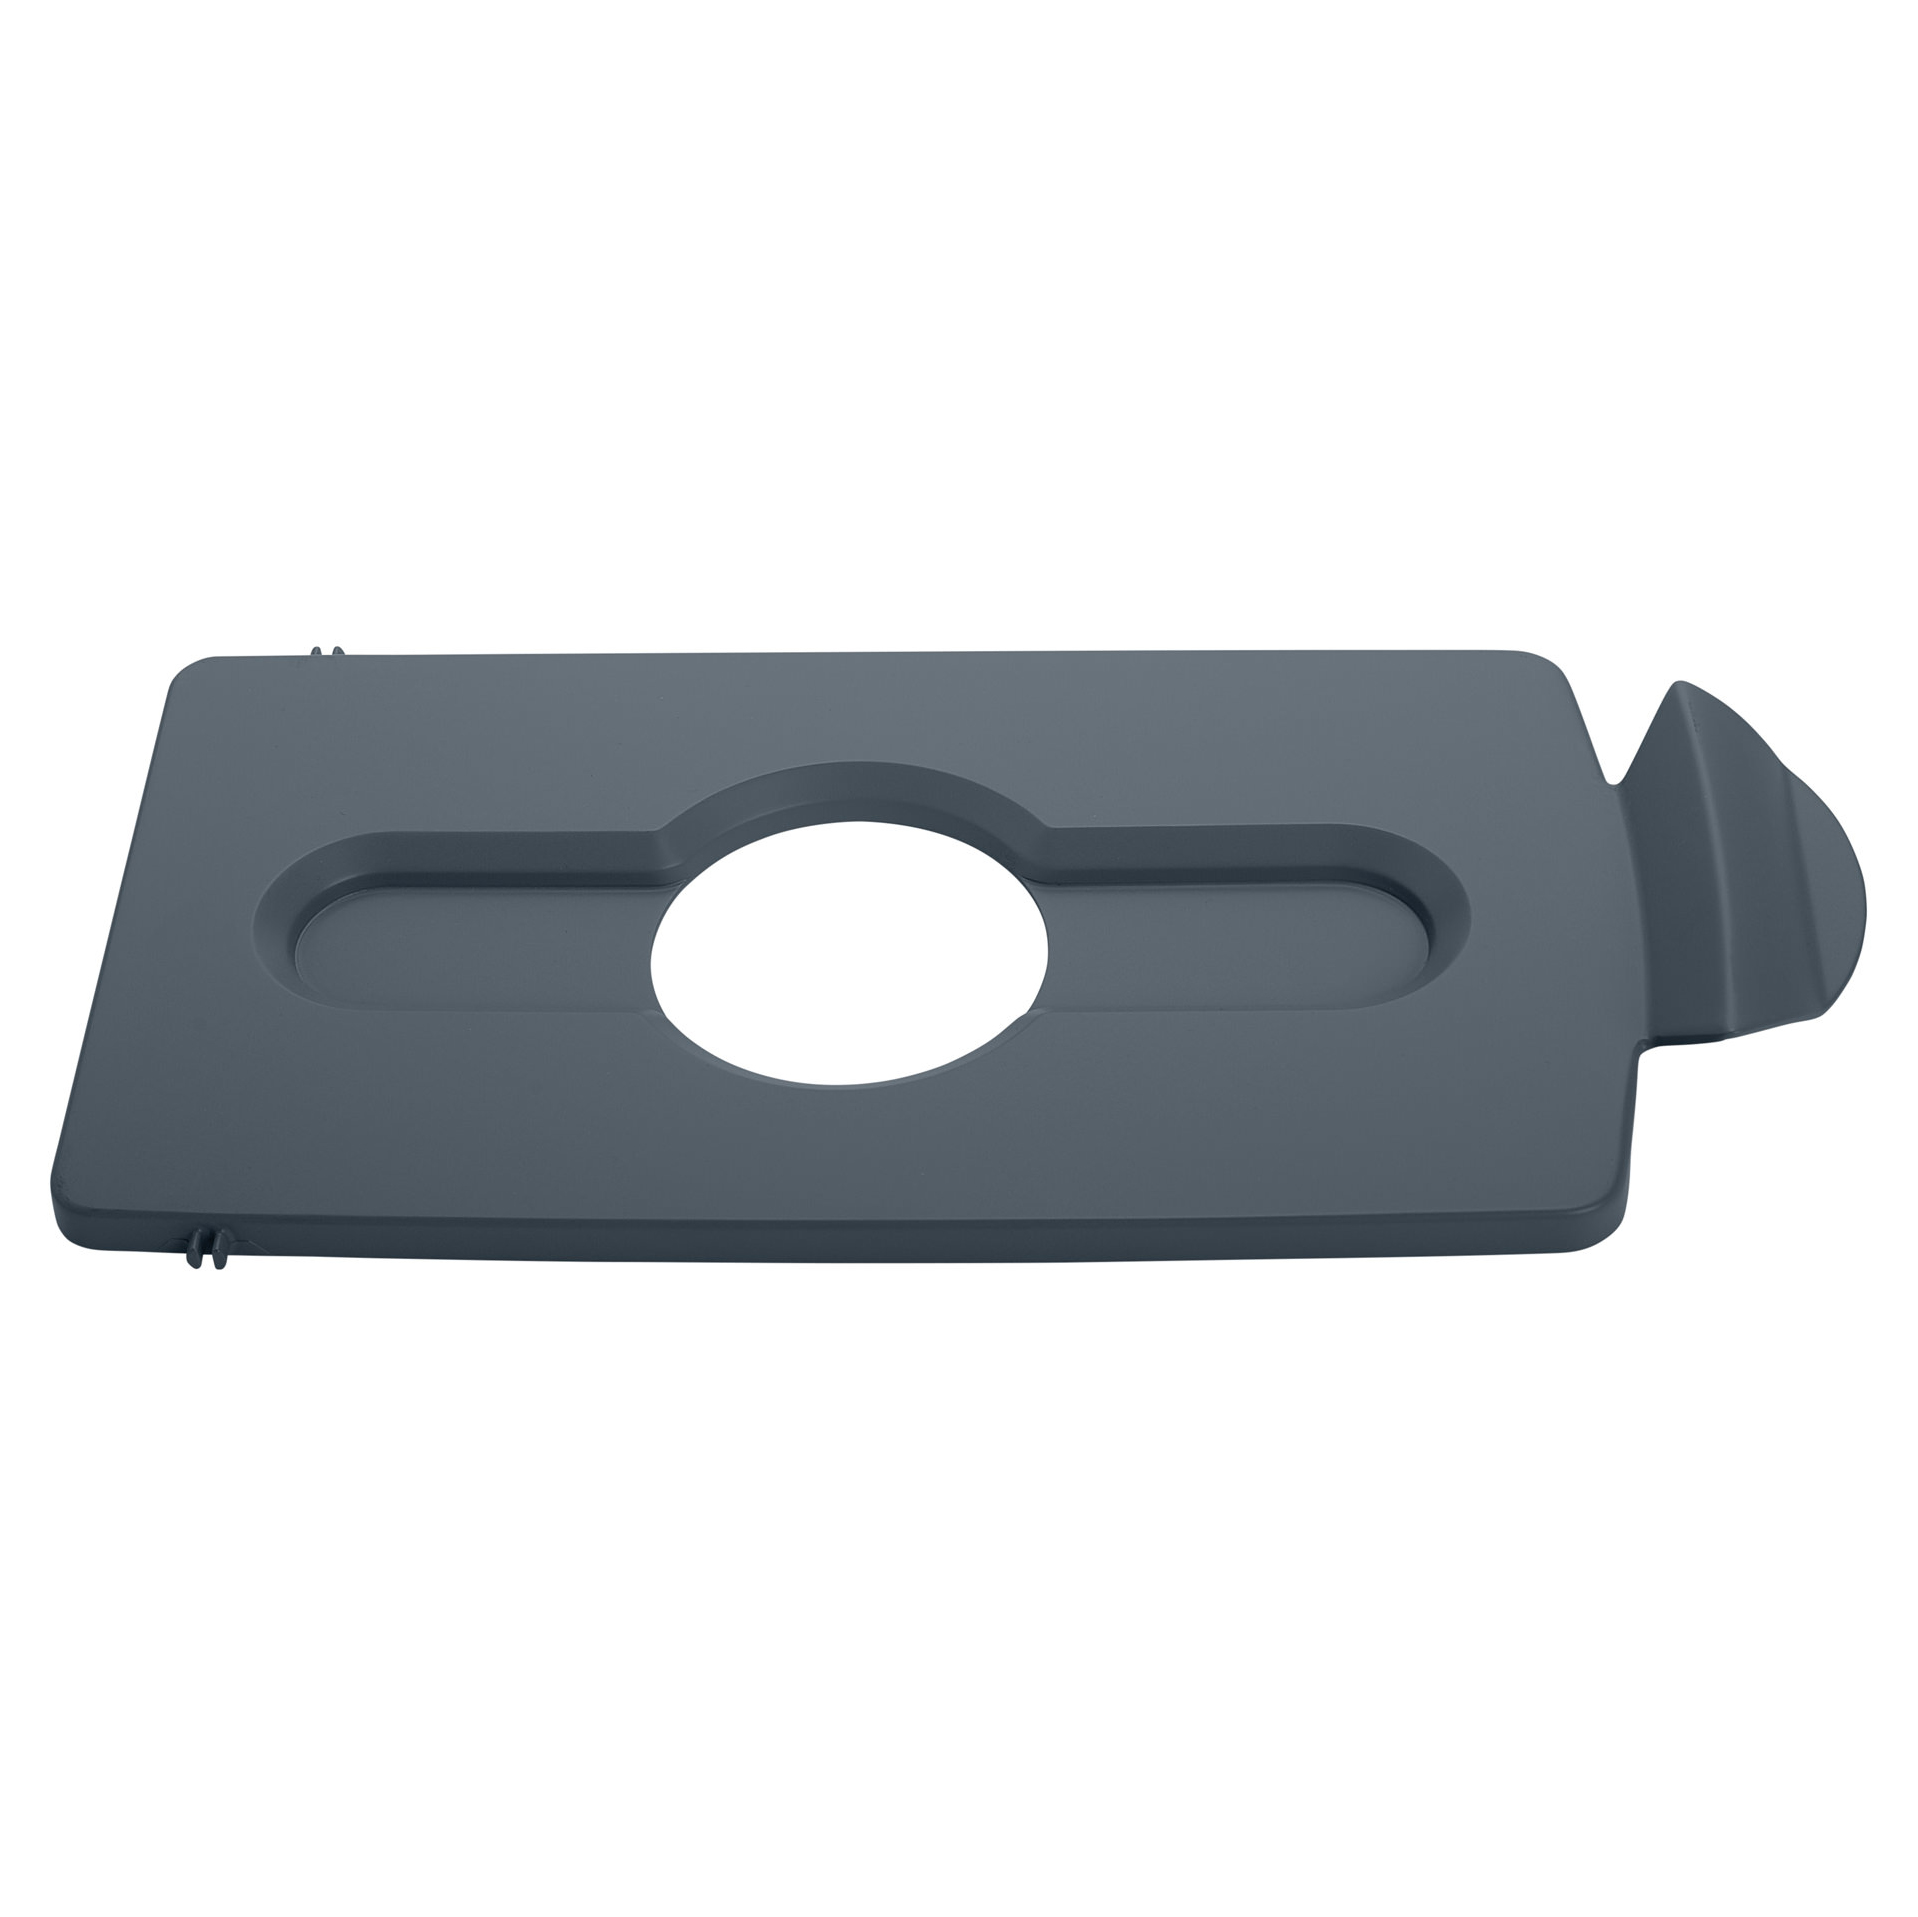 Rubbermaid Commercial Products 2007897 trash receptacle lid / top